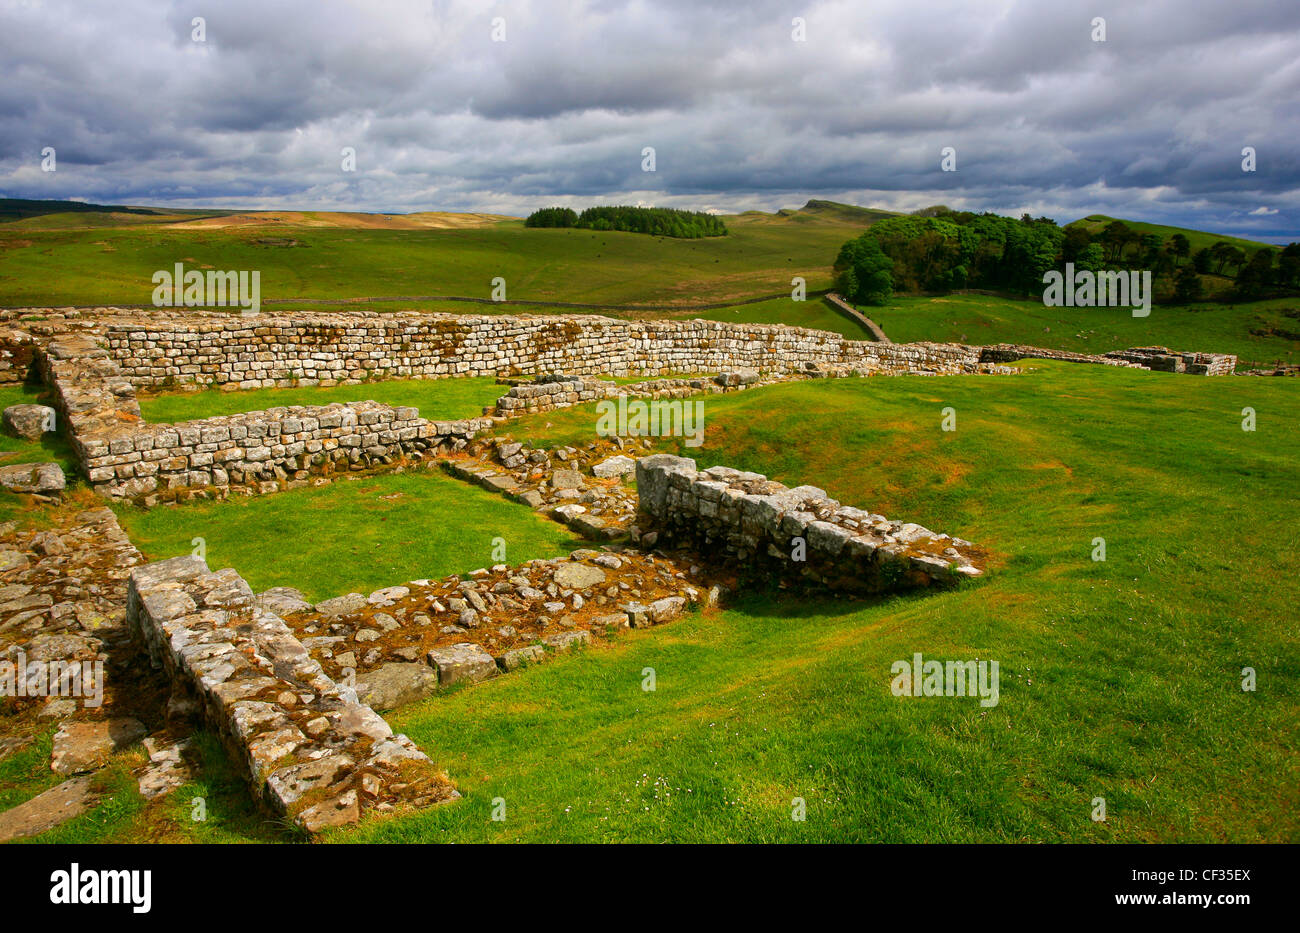 North gate of Housesteads Roman Fort, the most complete Roman fort in Britain on Hadrian's Wall. - Stock Image